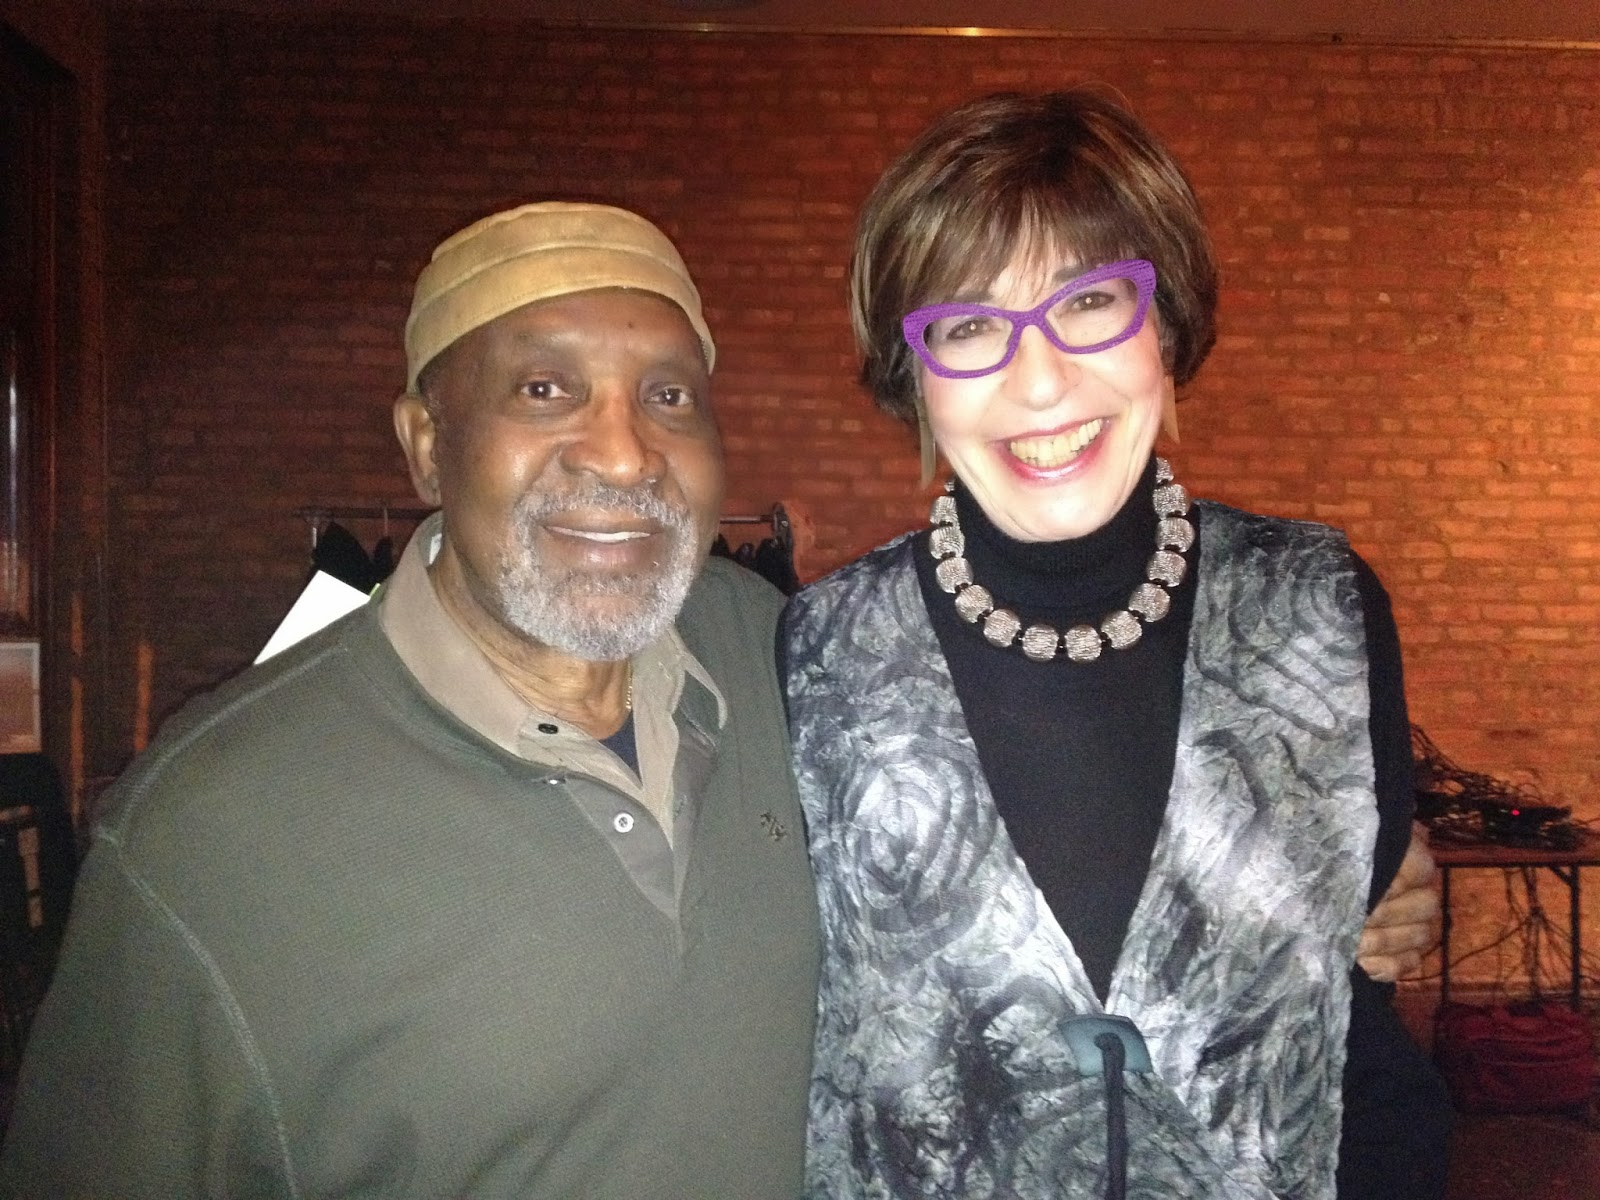 Hyde Park Jazz Society President Charlie Thomas and Secretary Judith Stein